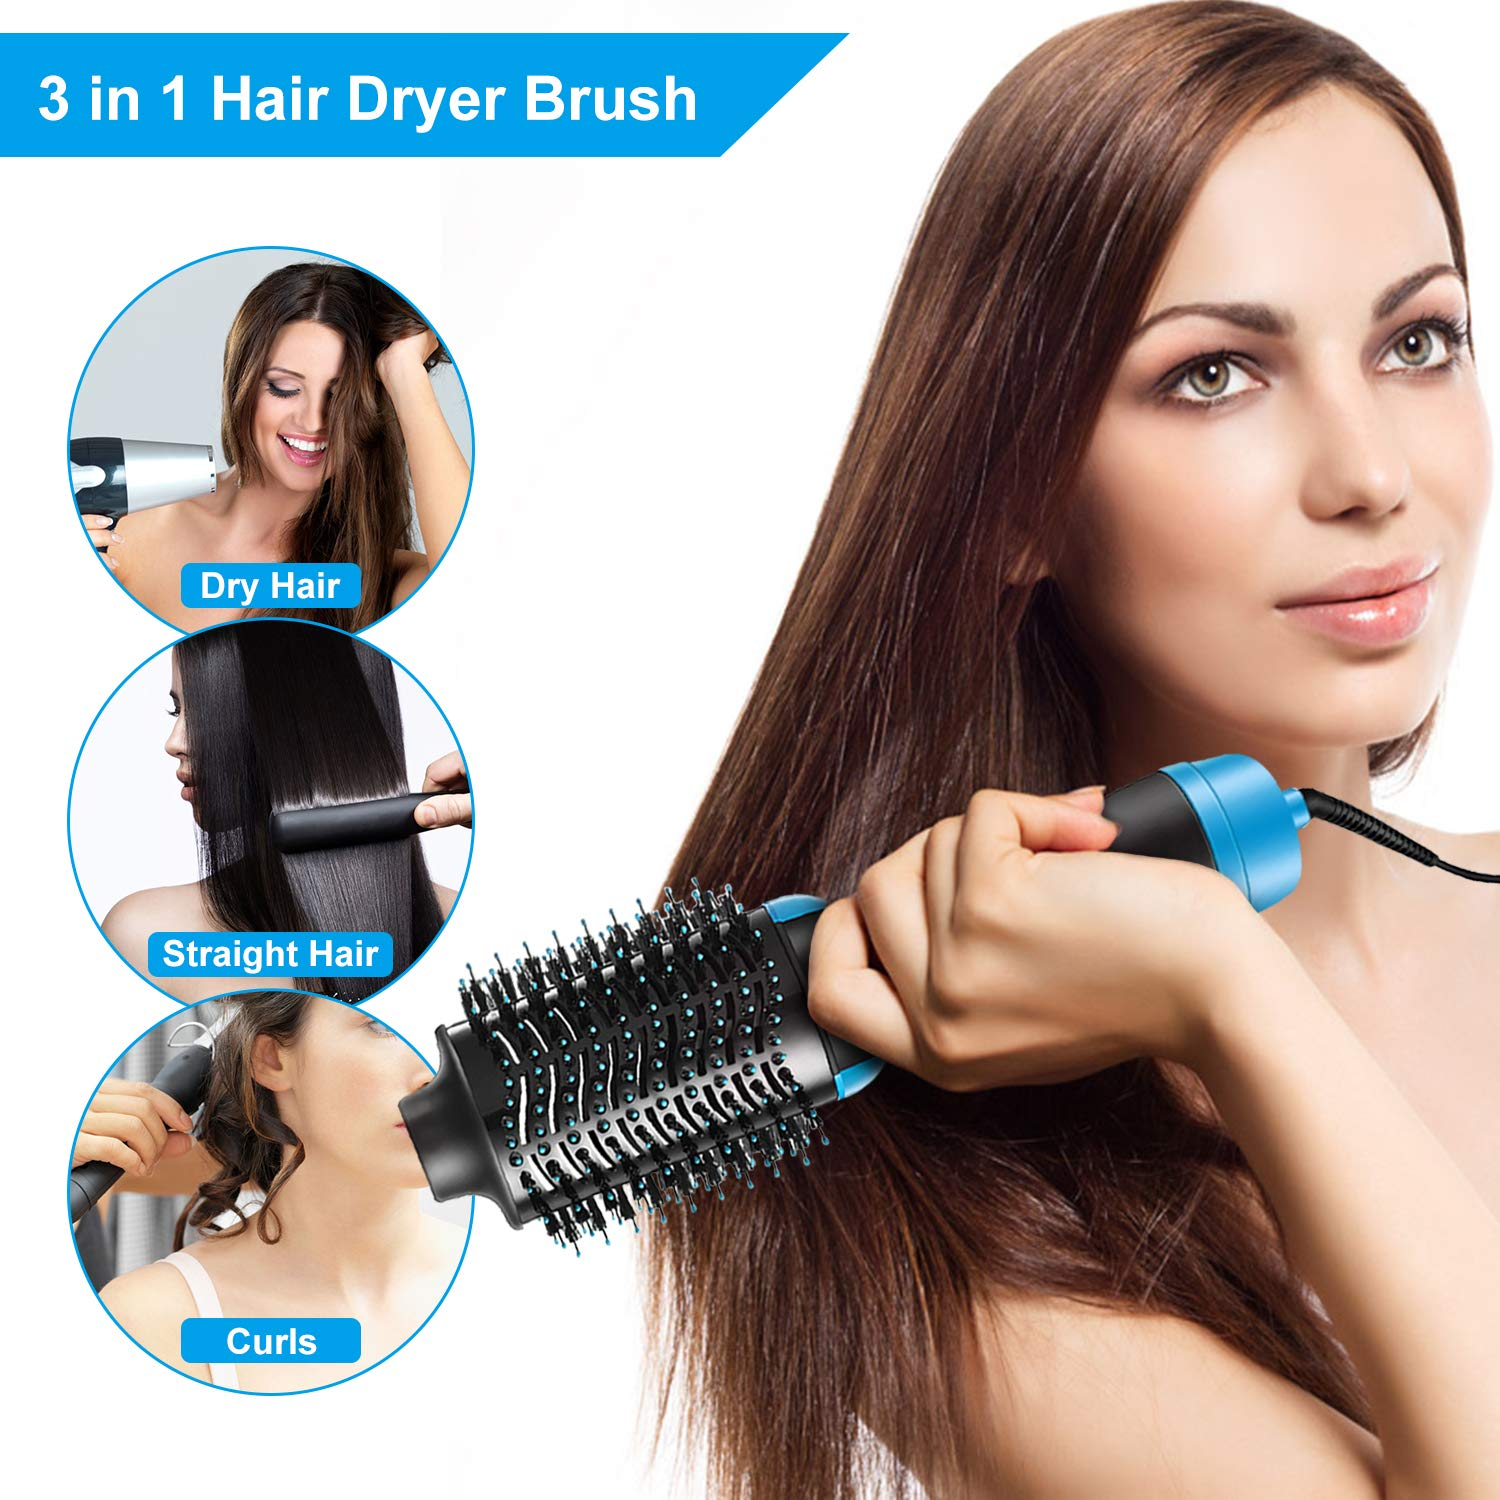 Hair Dryer Brush – Multifunctional Electric Hot Air Round Brush Blow Dryer – One Step Negative Ions Hair Brush Dryer Straightener Styler Reduce Frizz and Static Blue